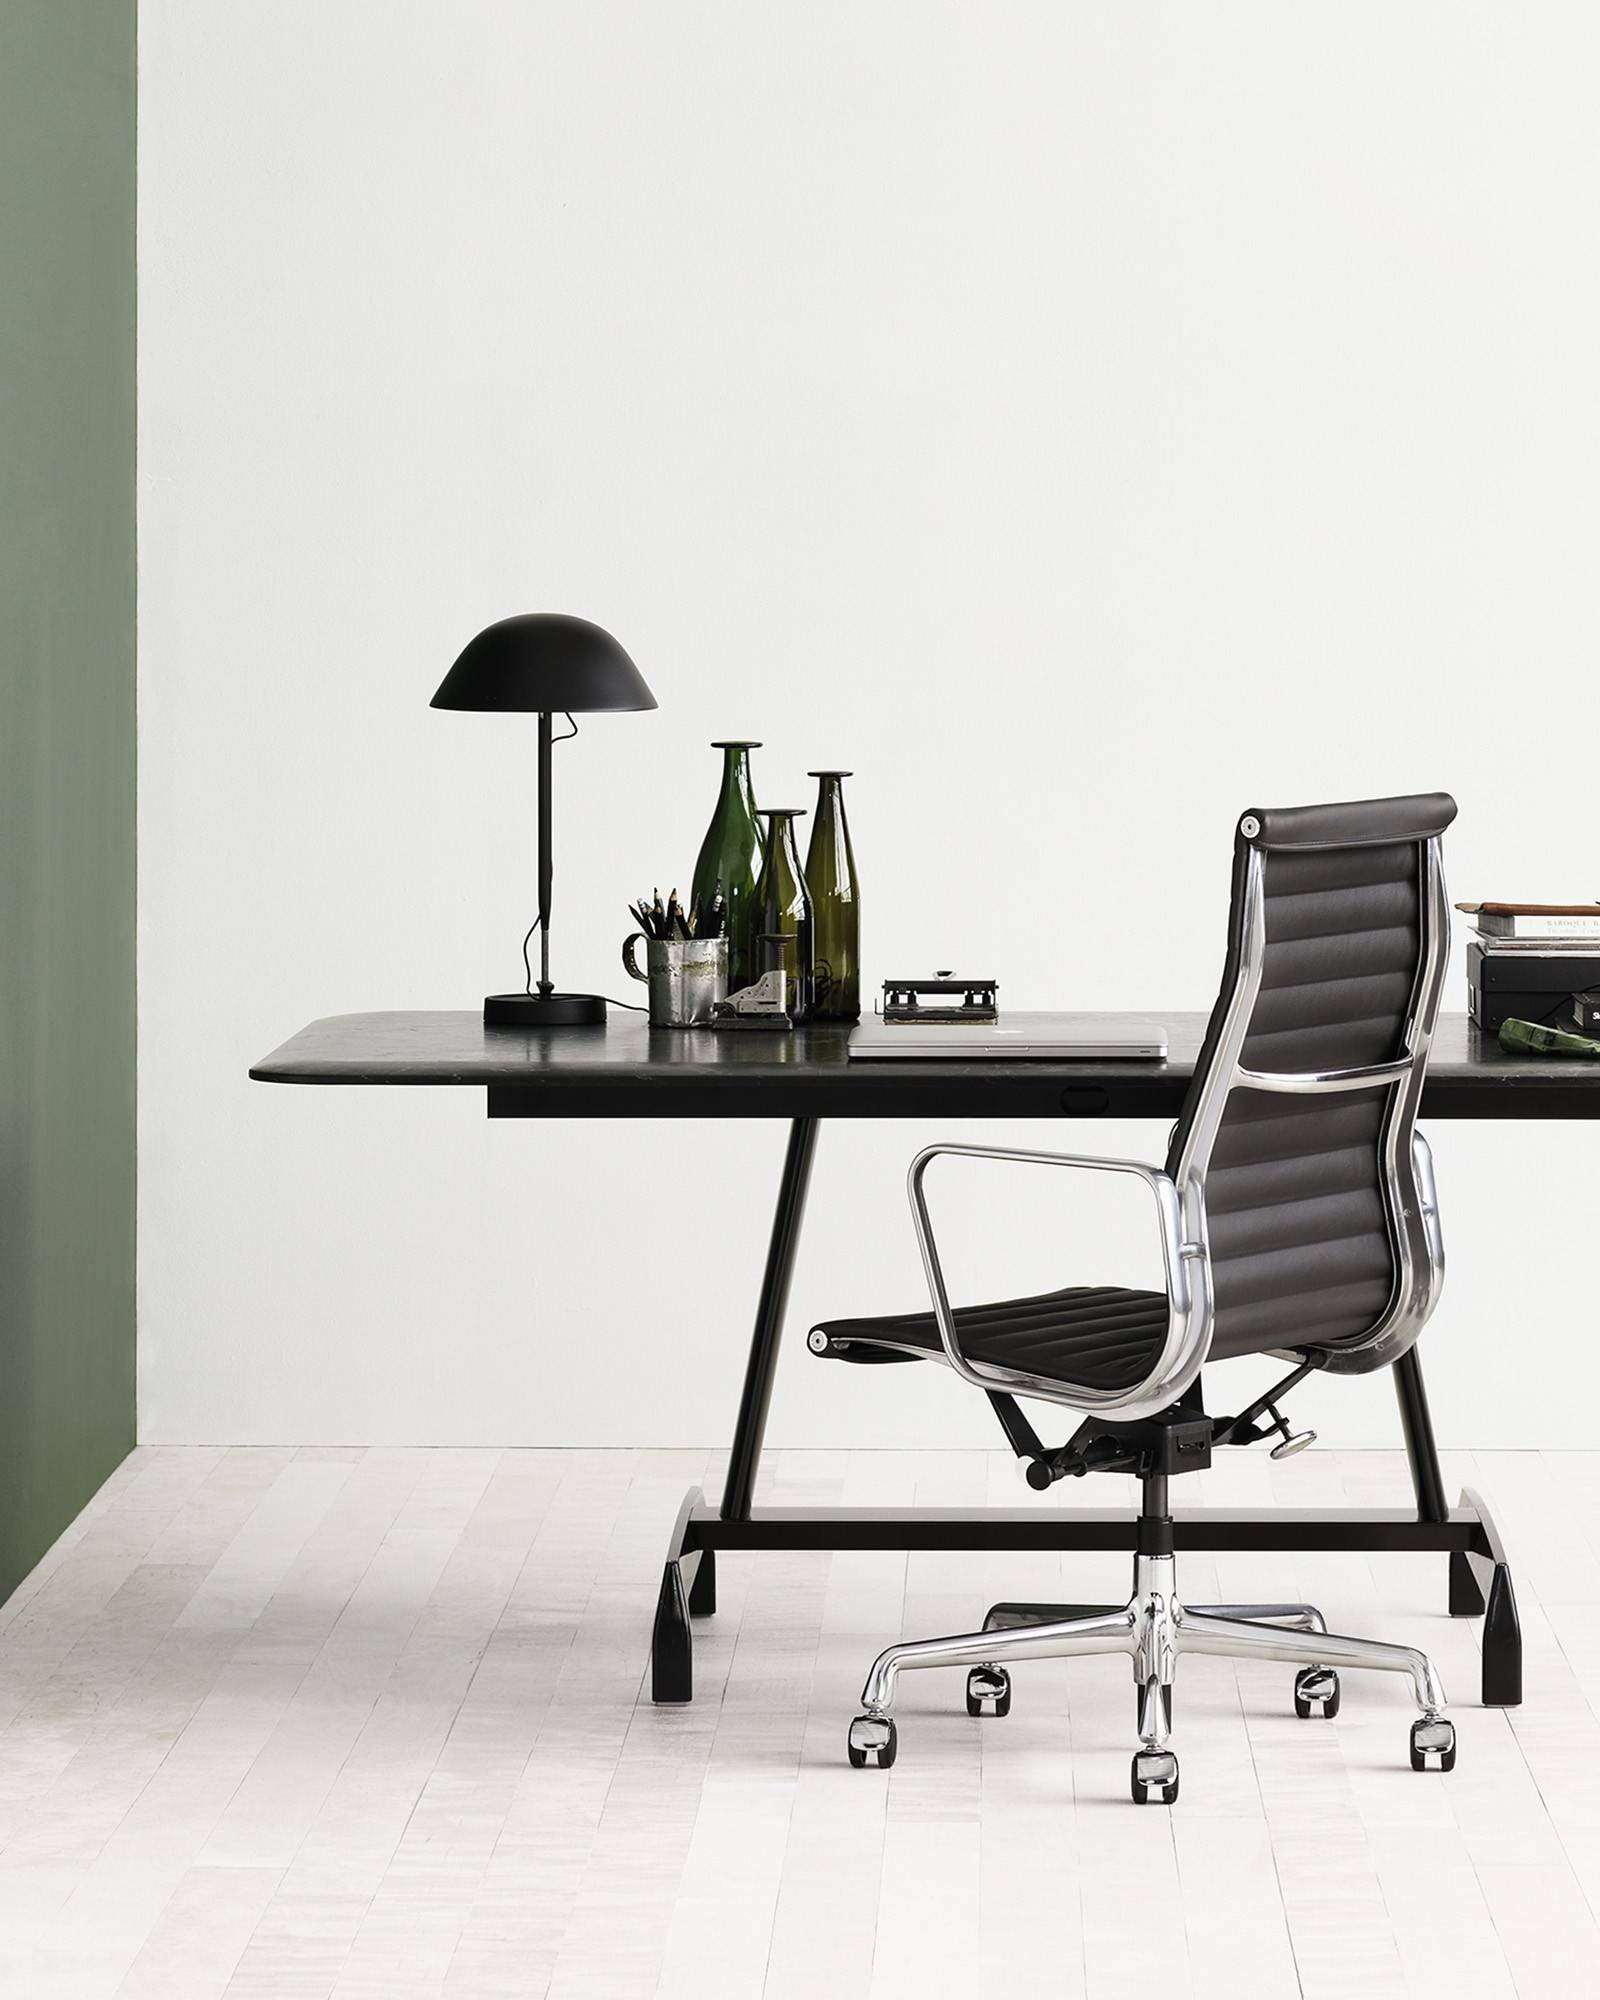 gallery we miller official office unit of side learn at herman more eames designs products are retailer an desk